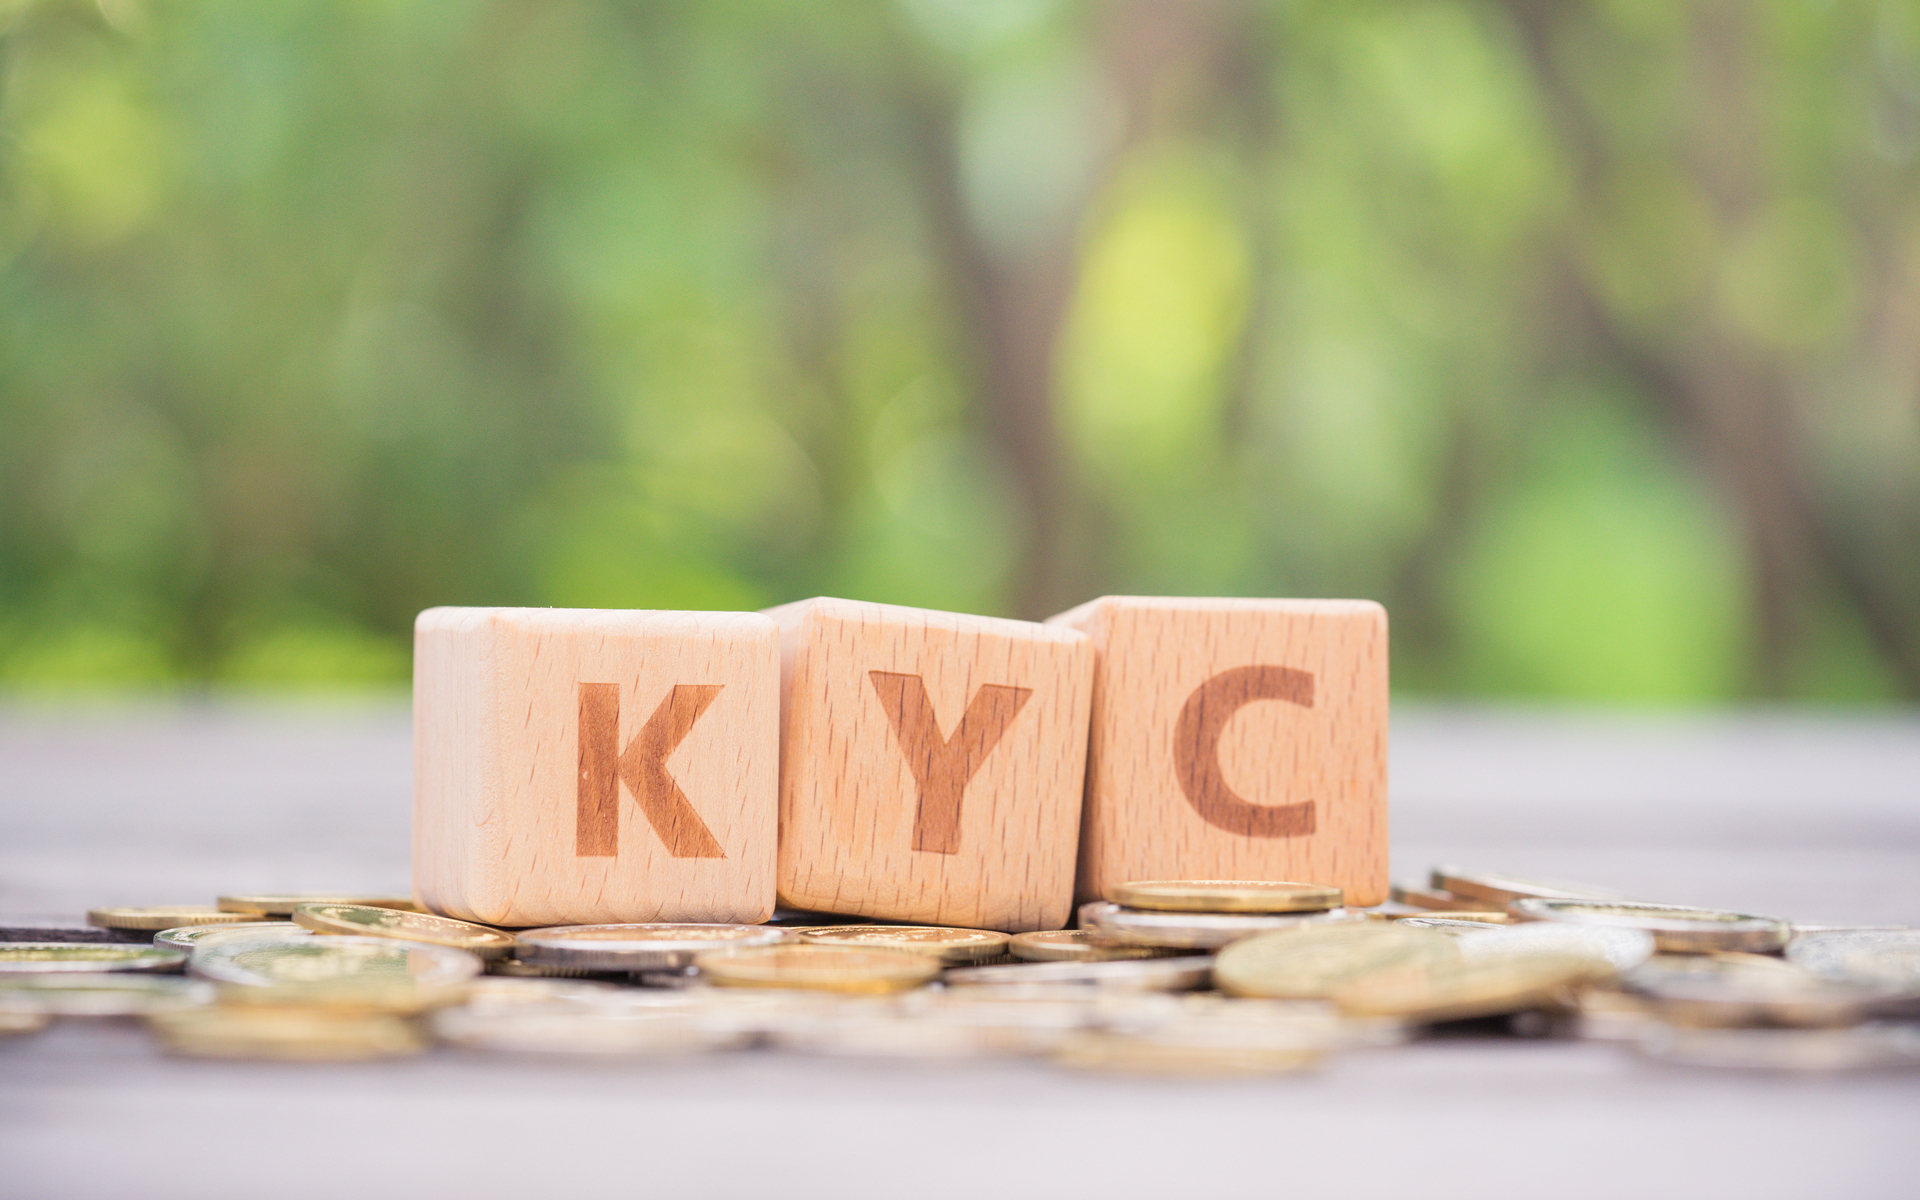 crypto kyc and aml